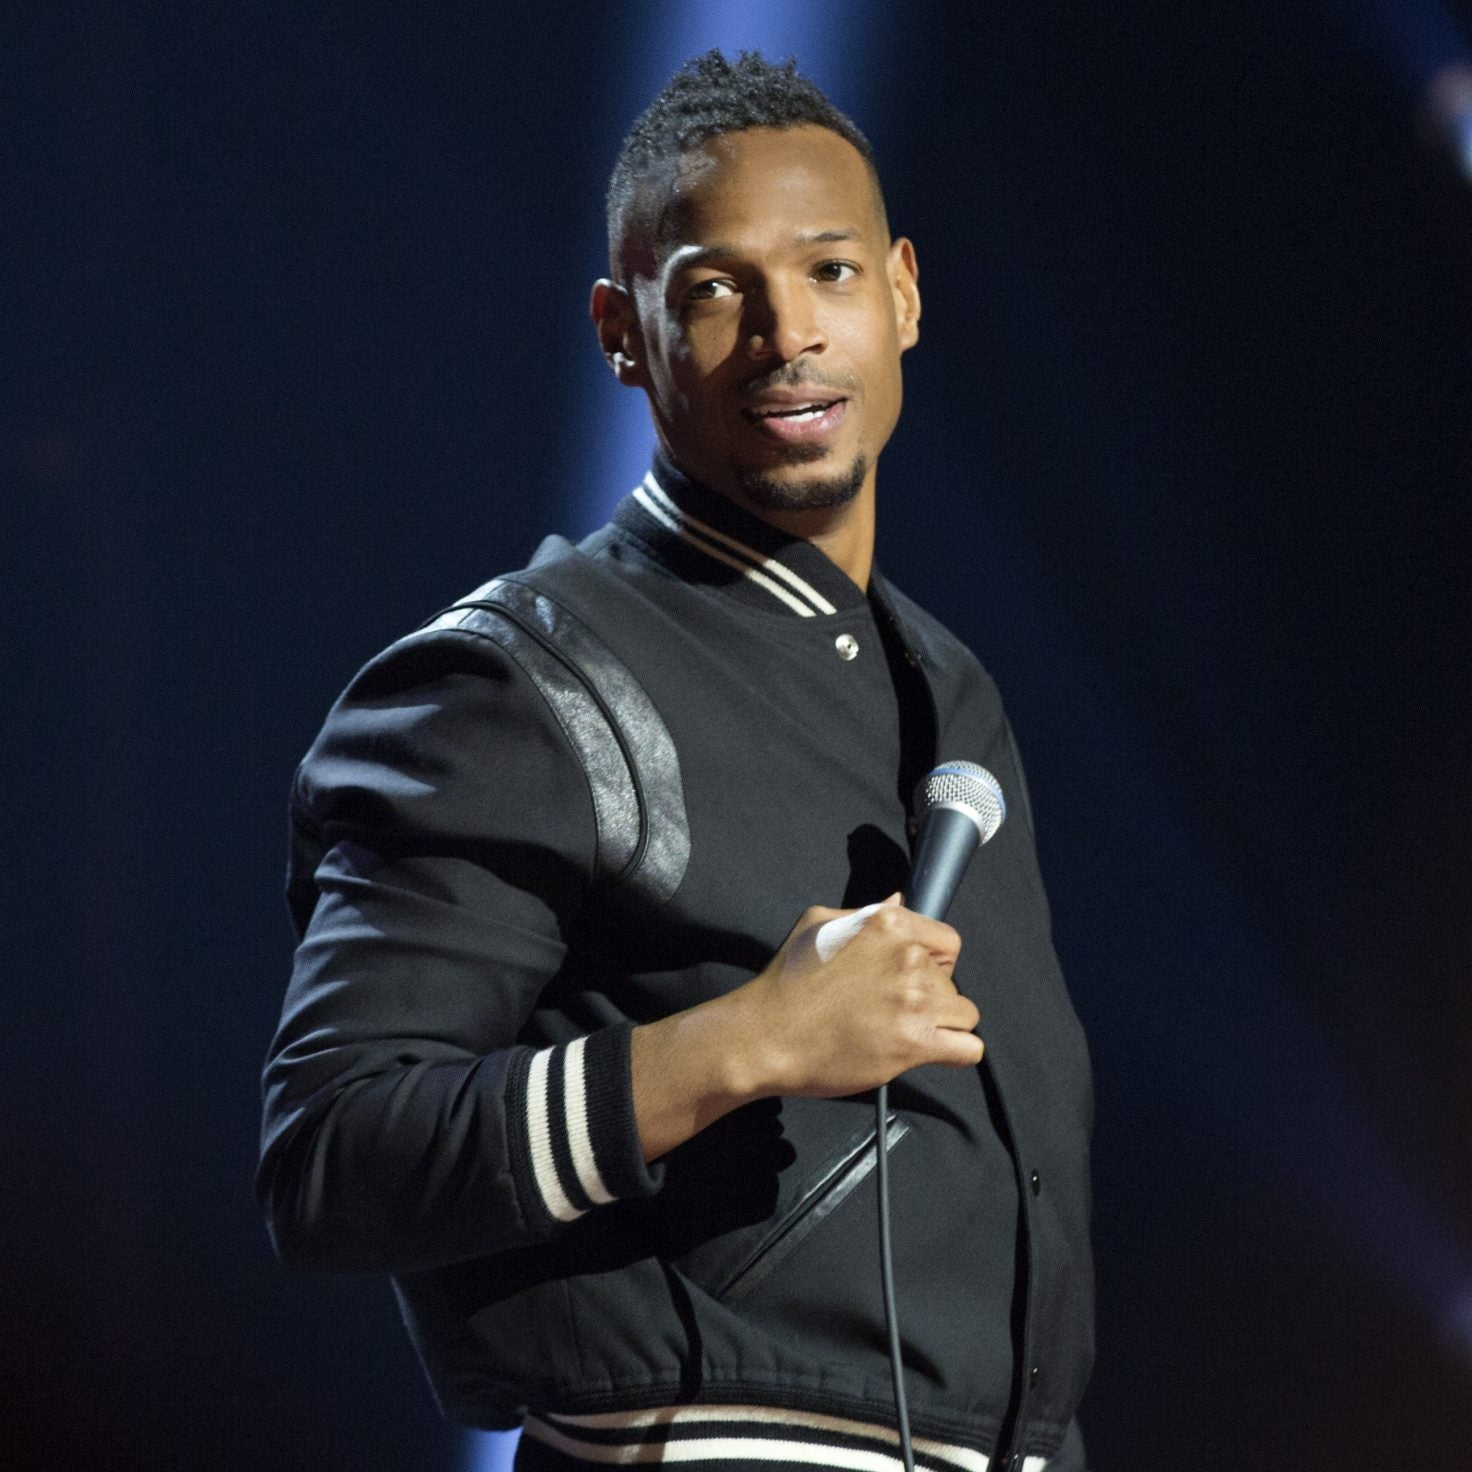 Marlon Wayans Mourns Loss Of His 'Ma' In Sentimental Post